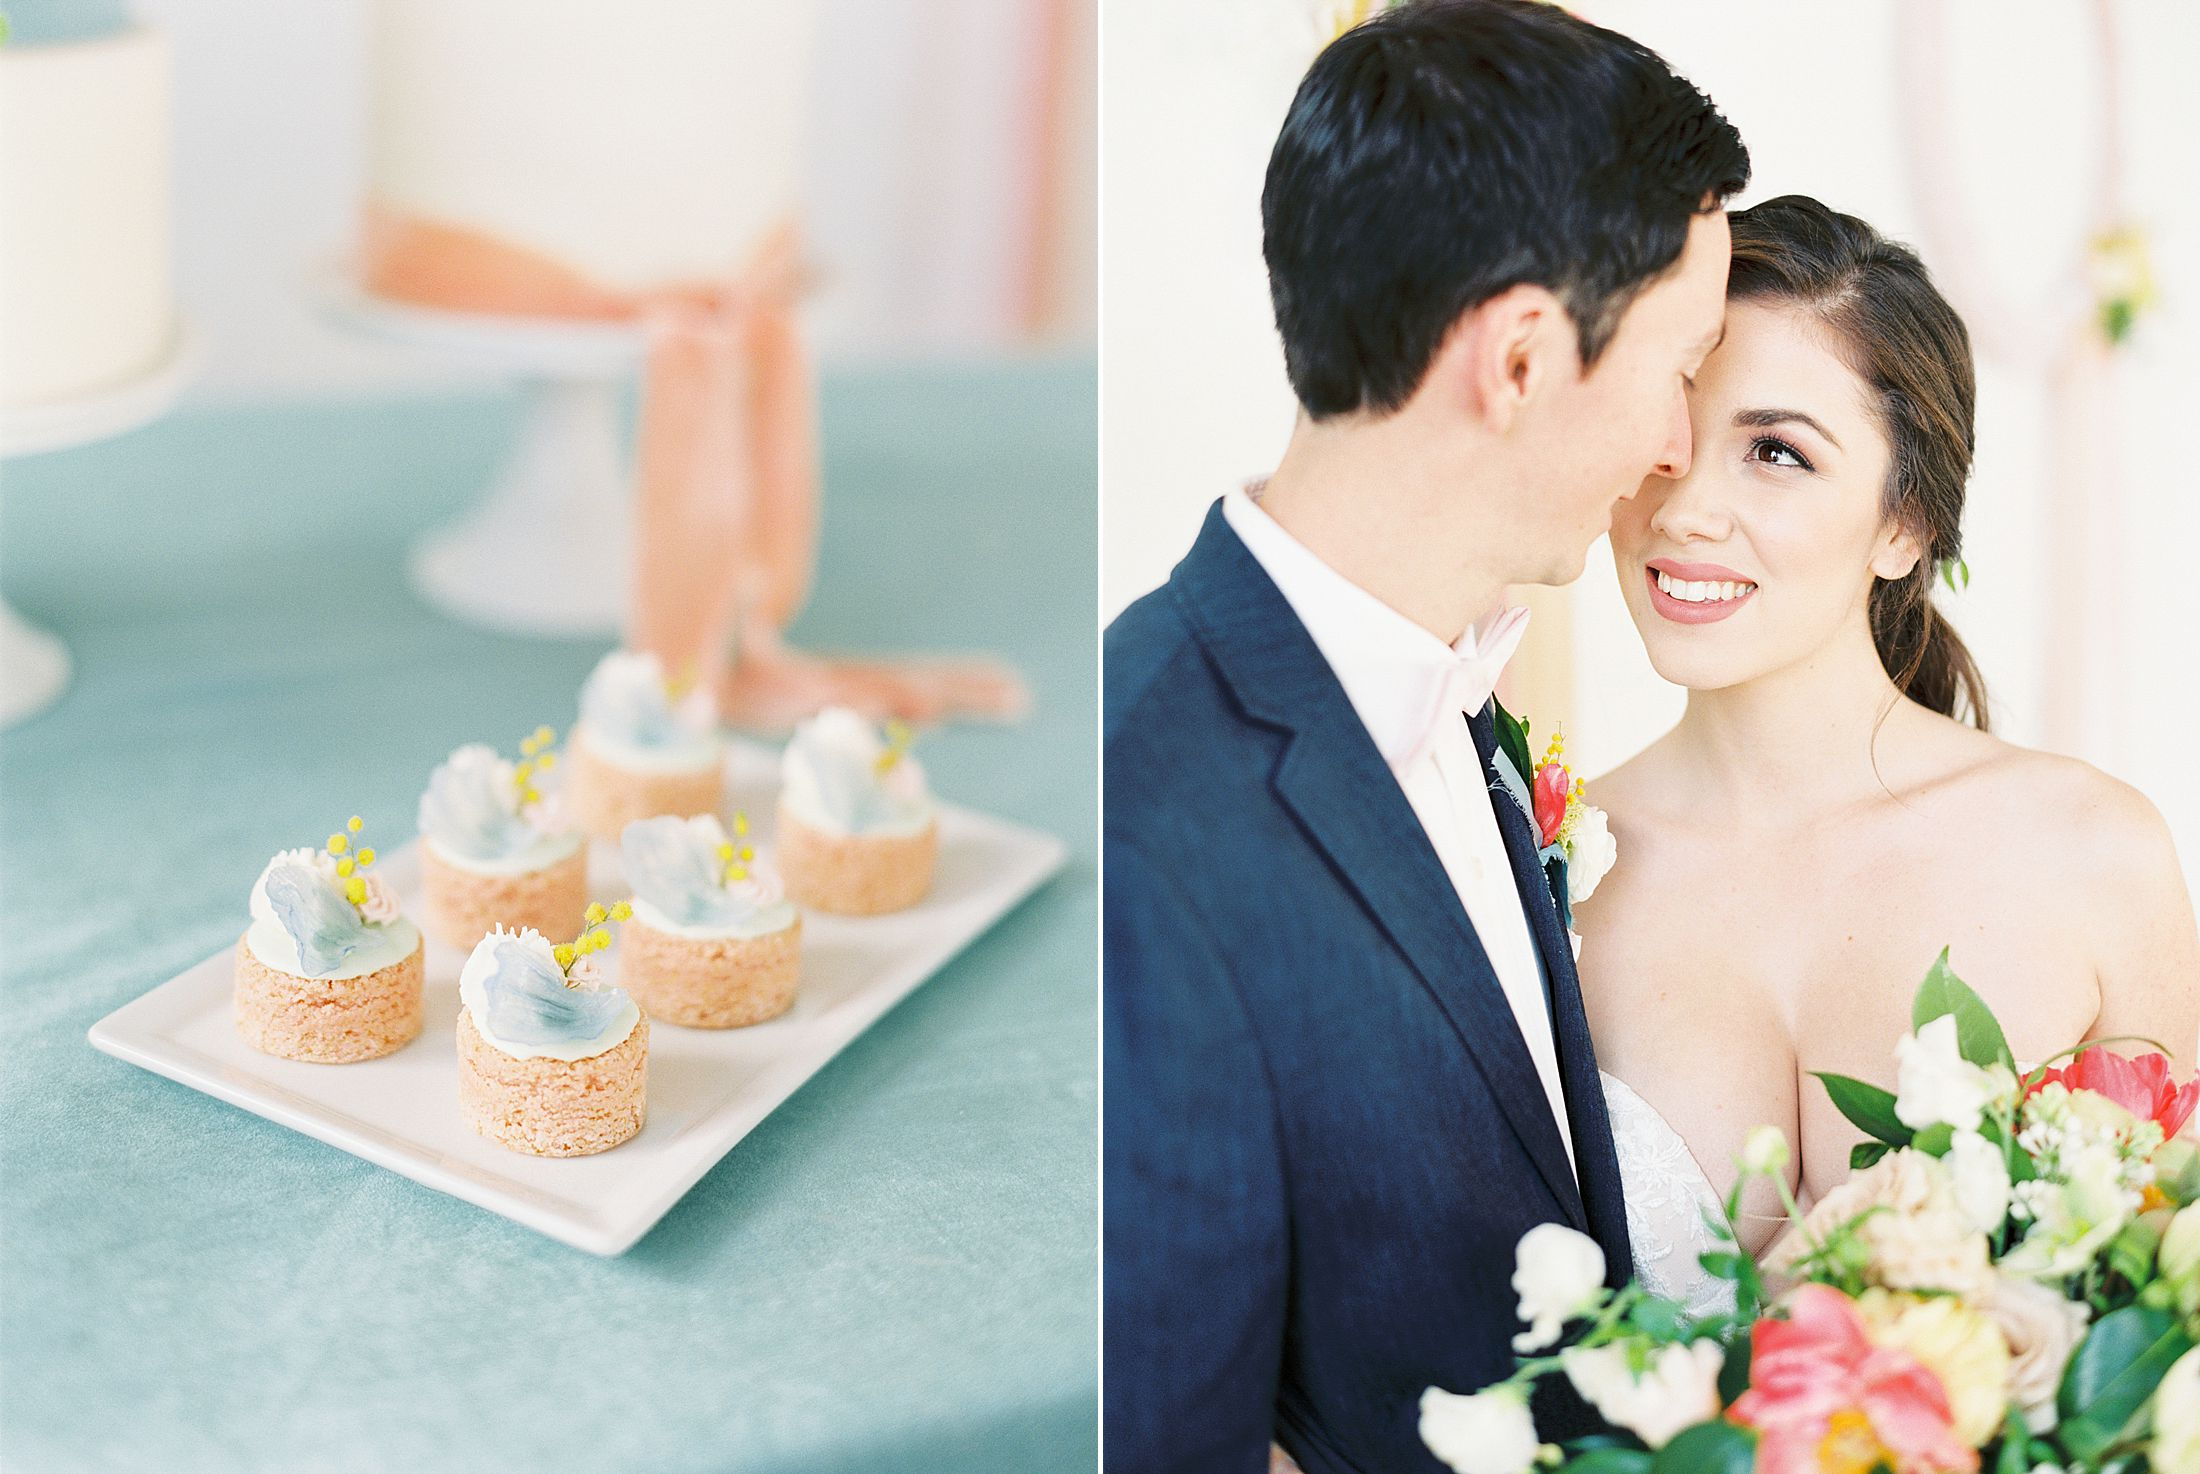 Bay Area Spring Wedding Inspiration - Ashley Baumgartner - Inspired By This - Party Crush Studio and Lens of Lenox Videography - Bay Area Wedding Photography_0069.jpg